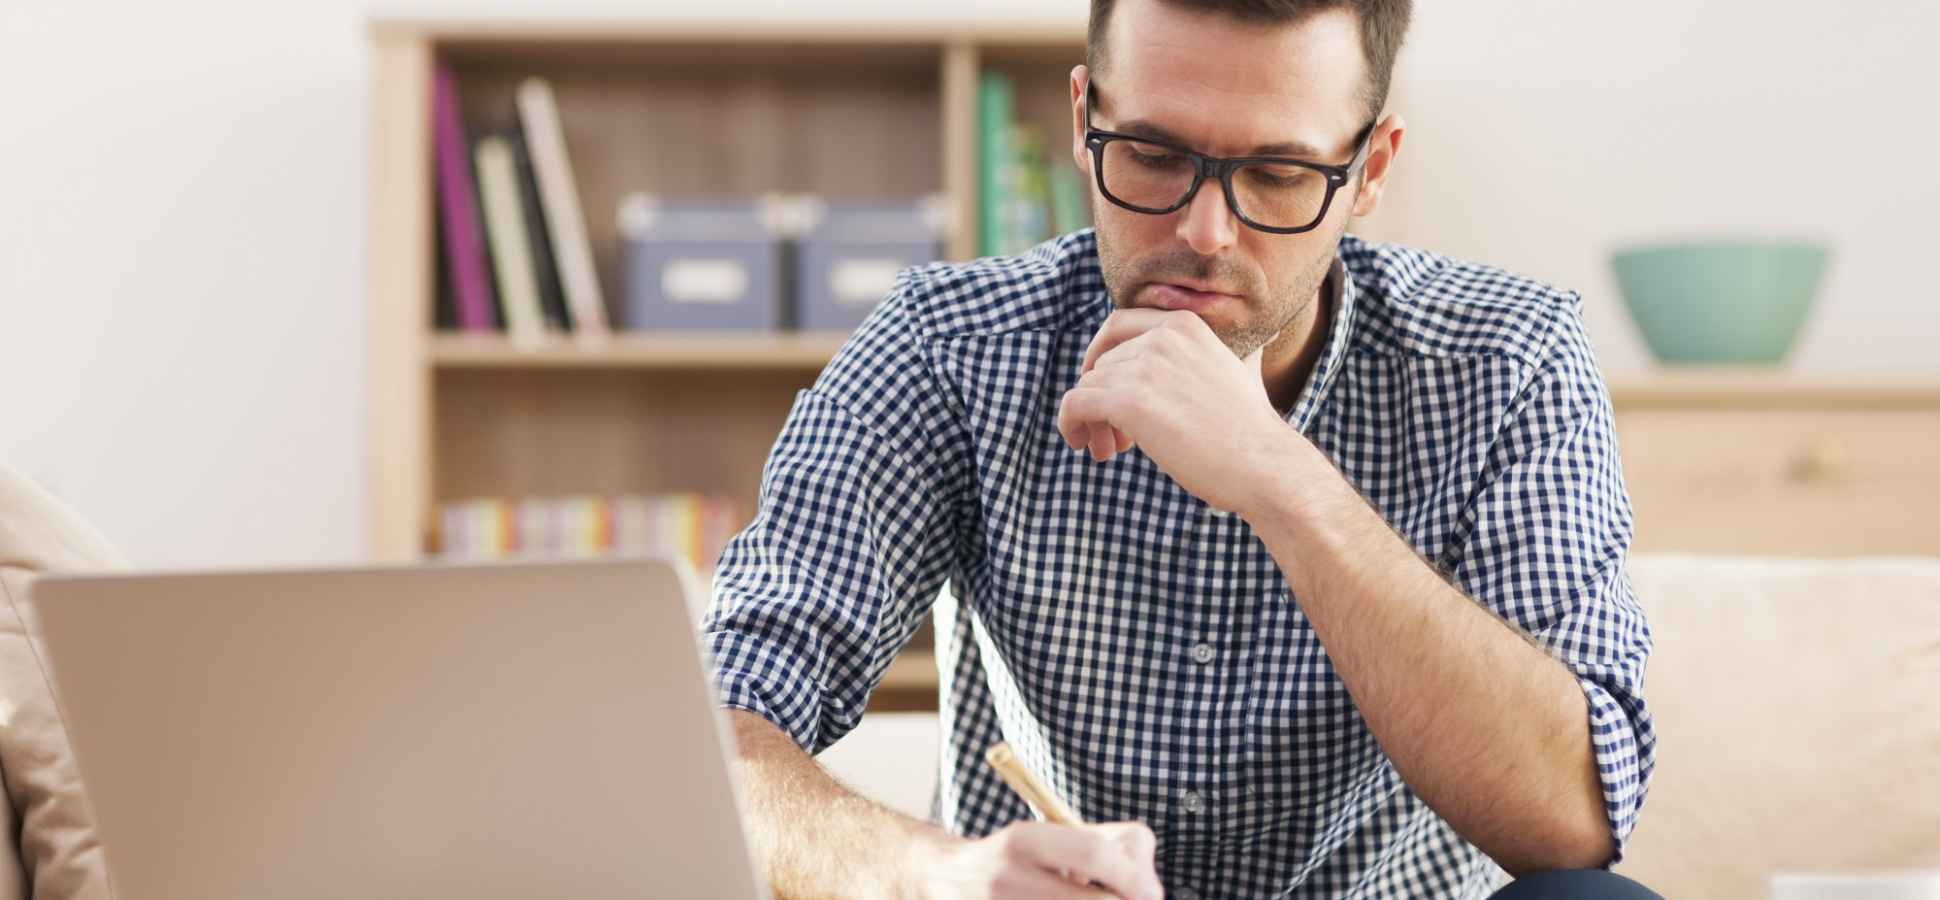 11 Reasons Your Writing Is Making You Look Bad